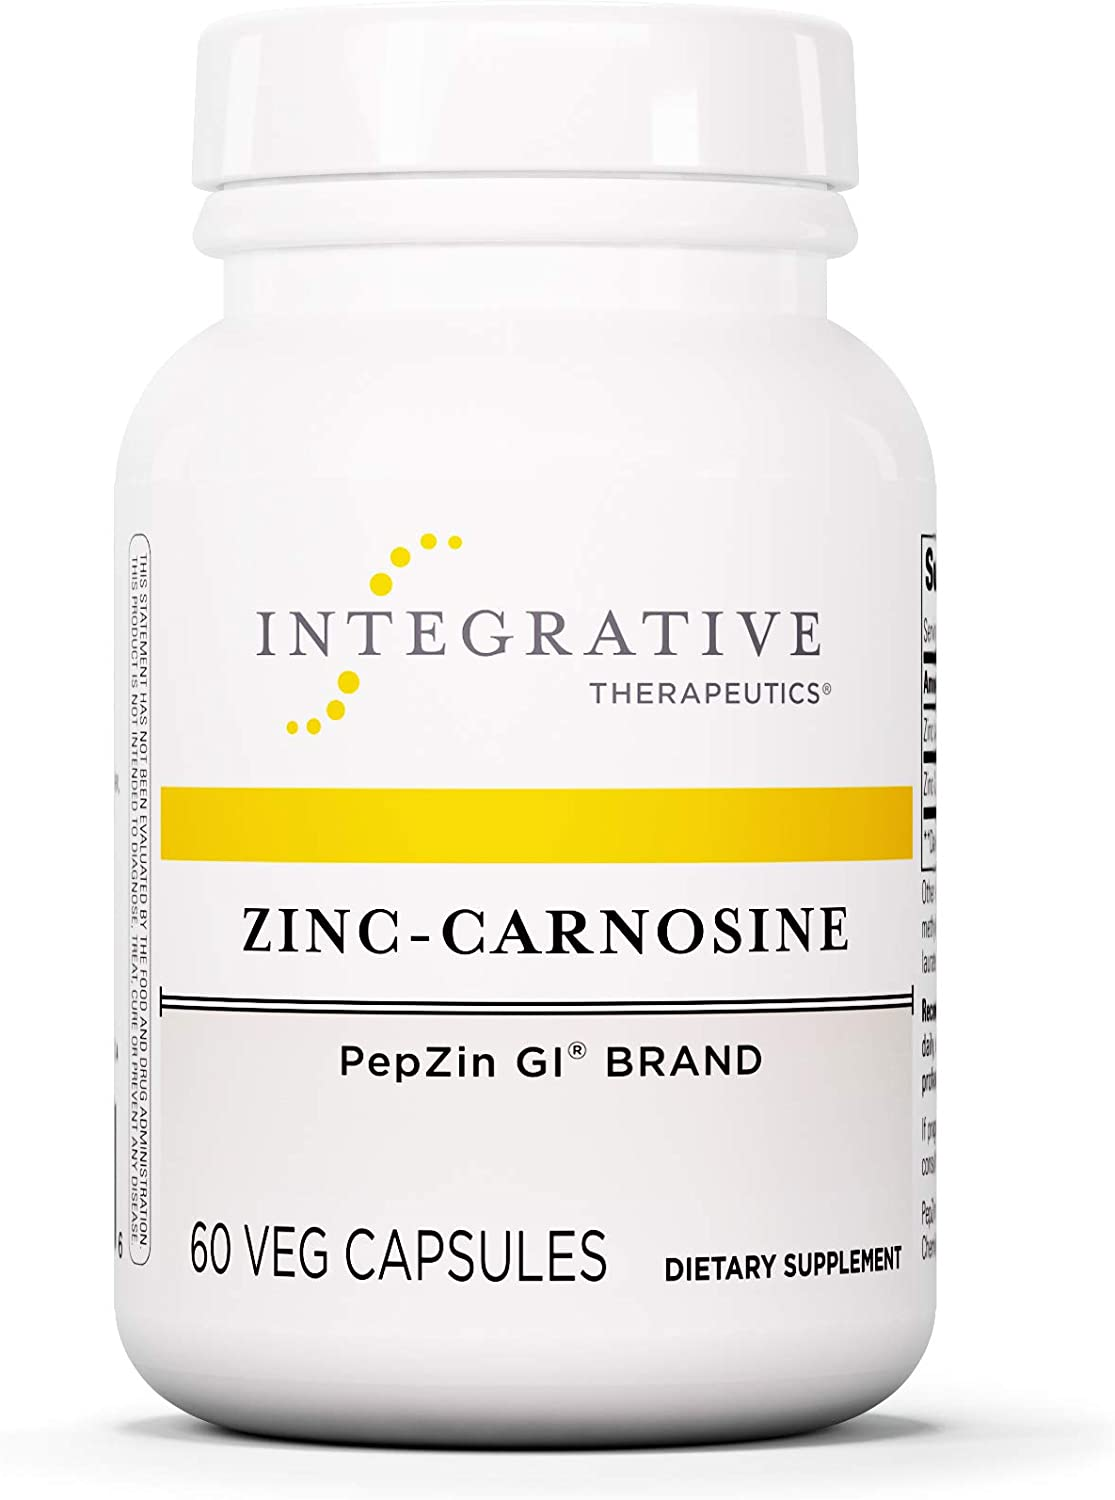 Integrative Therapeutics – Zinc-Carnosine – PepZin GI Brand – Supports Healthy Gastrointestinal Lining Relieve Gastric Discomfort – 60 Capsules